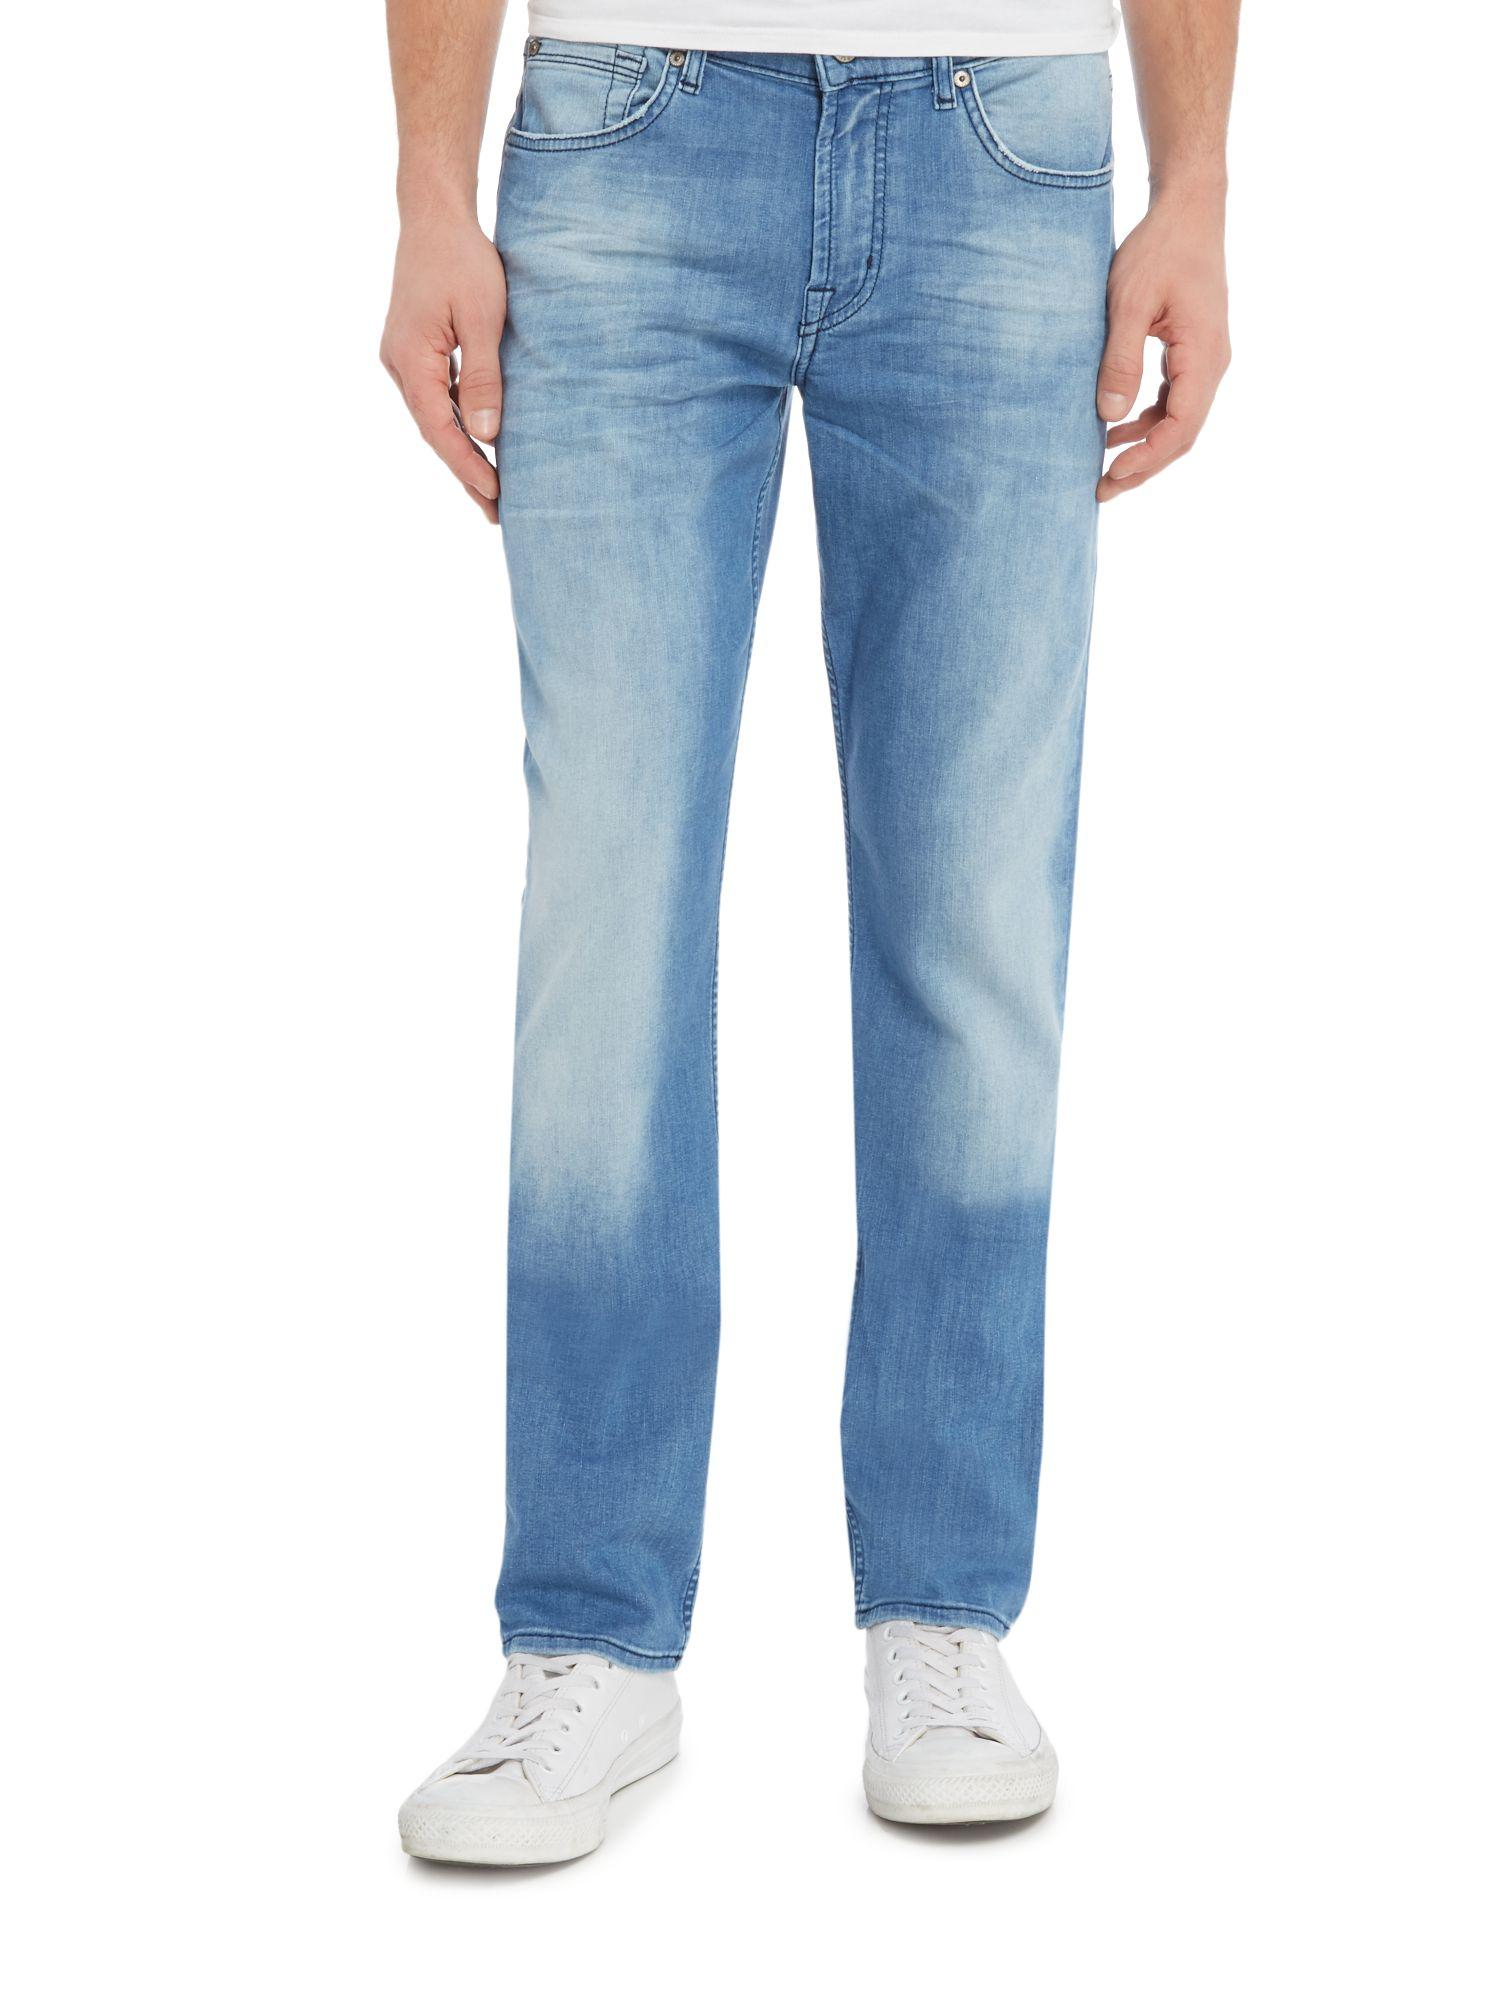 7 For All Mankind Denim Weidenligblu Slimmy Jeans in Light Blue (Blue) for Men